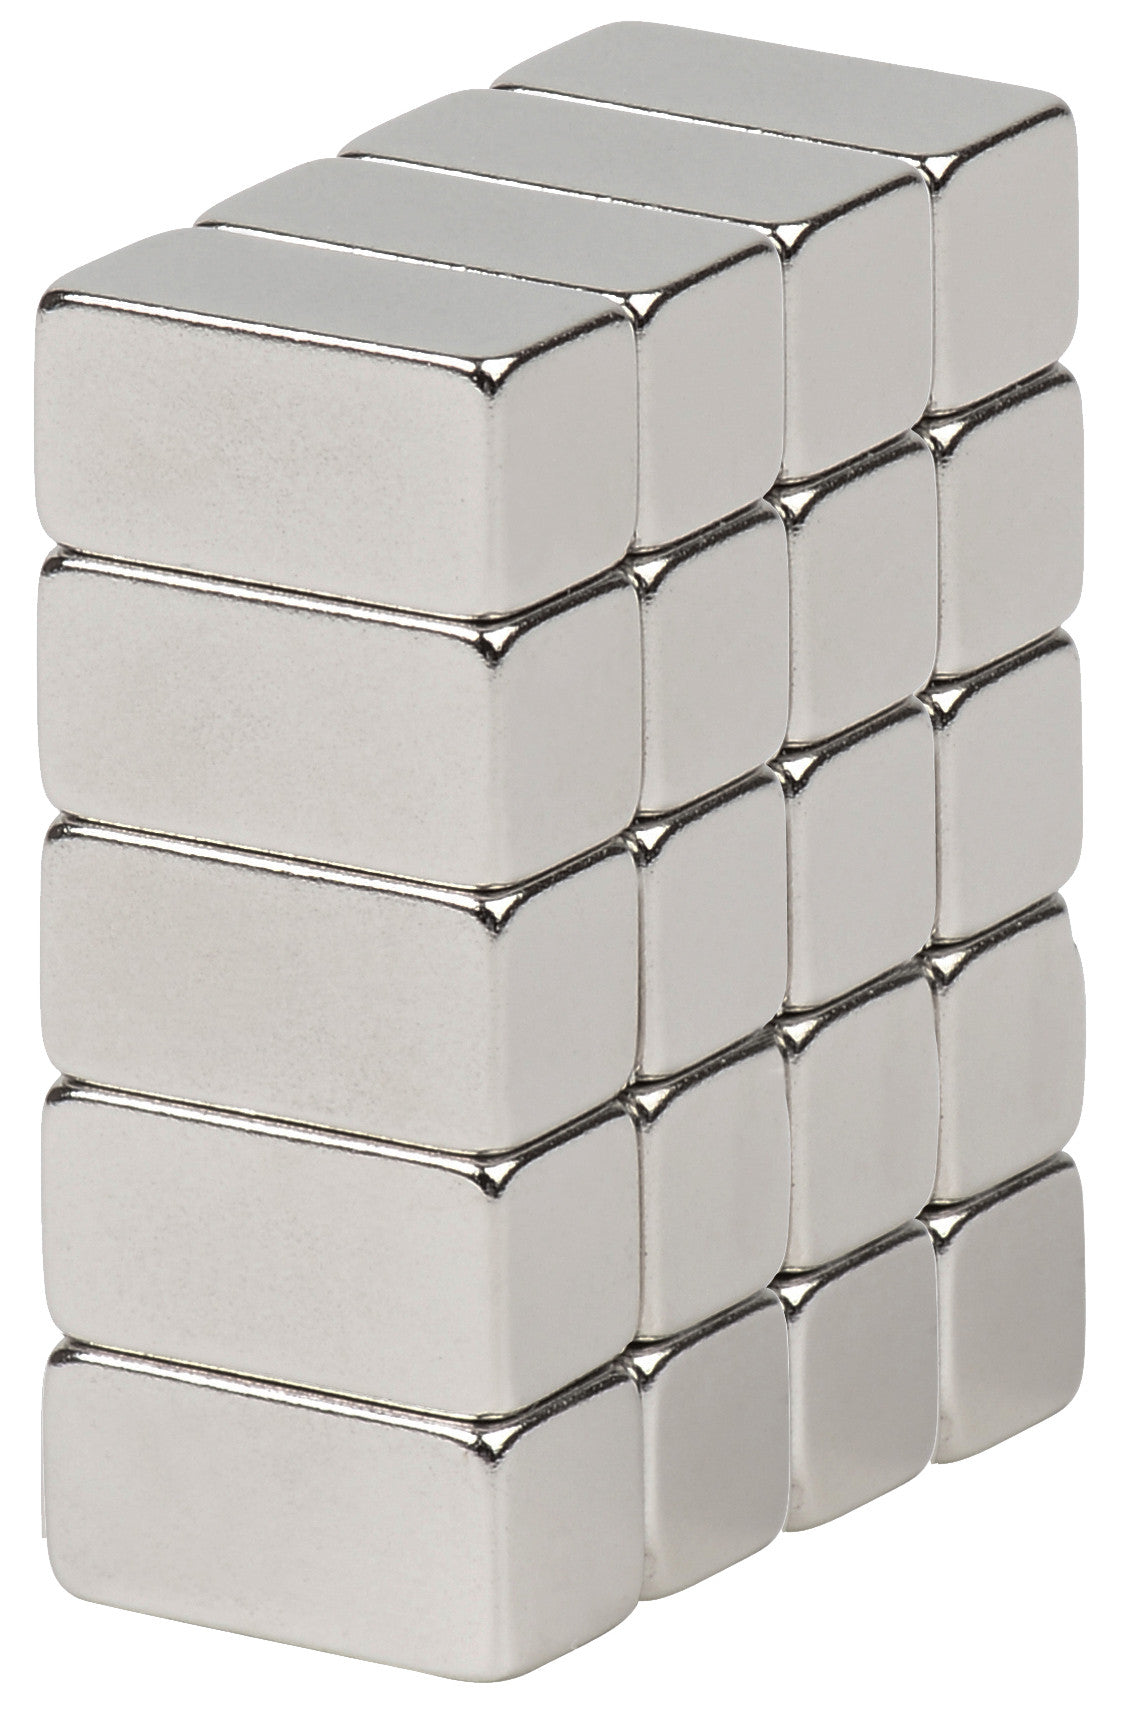 Super strong magnets for crafts - Bykes 20 Neodymium Bar Magnets Strong Magnets Refrigerator Magnets Super Strong Rare Earth Craft Magnets 1 2 X 1 4 X 1 4 Inch Bar N48